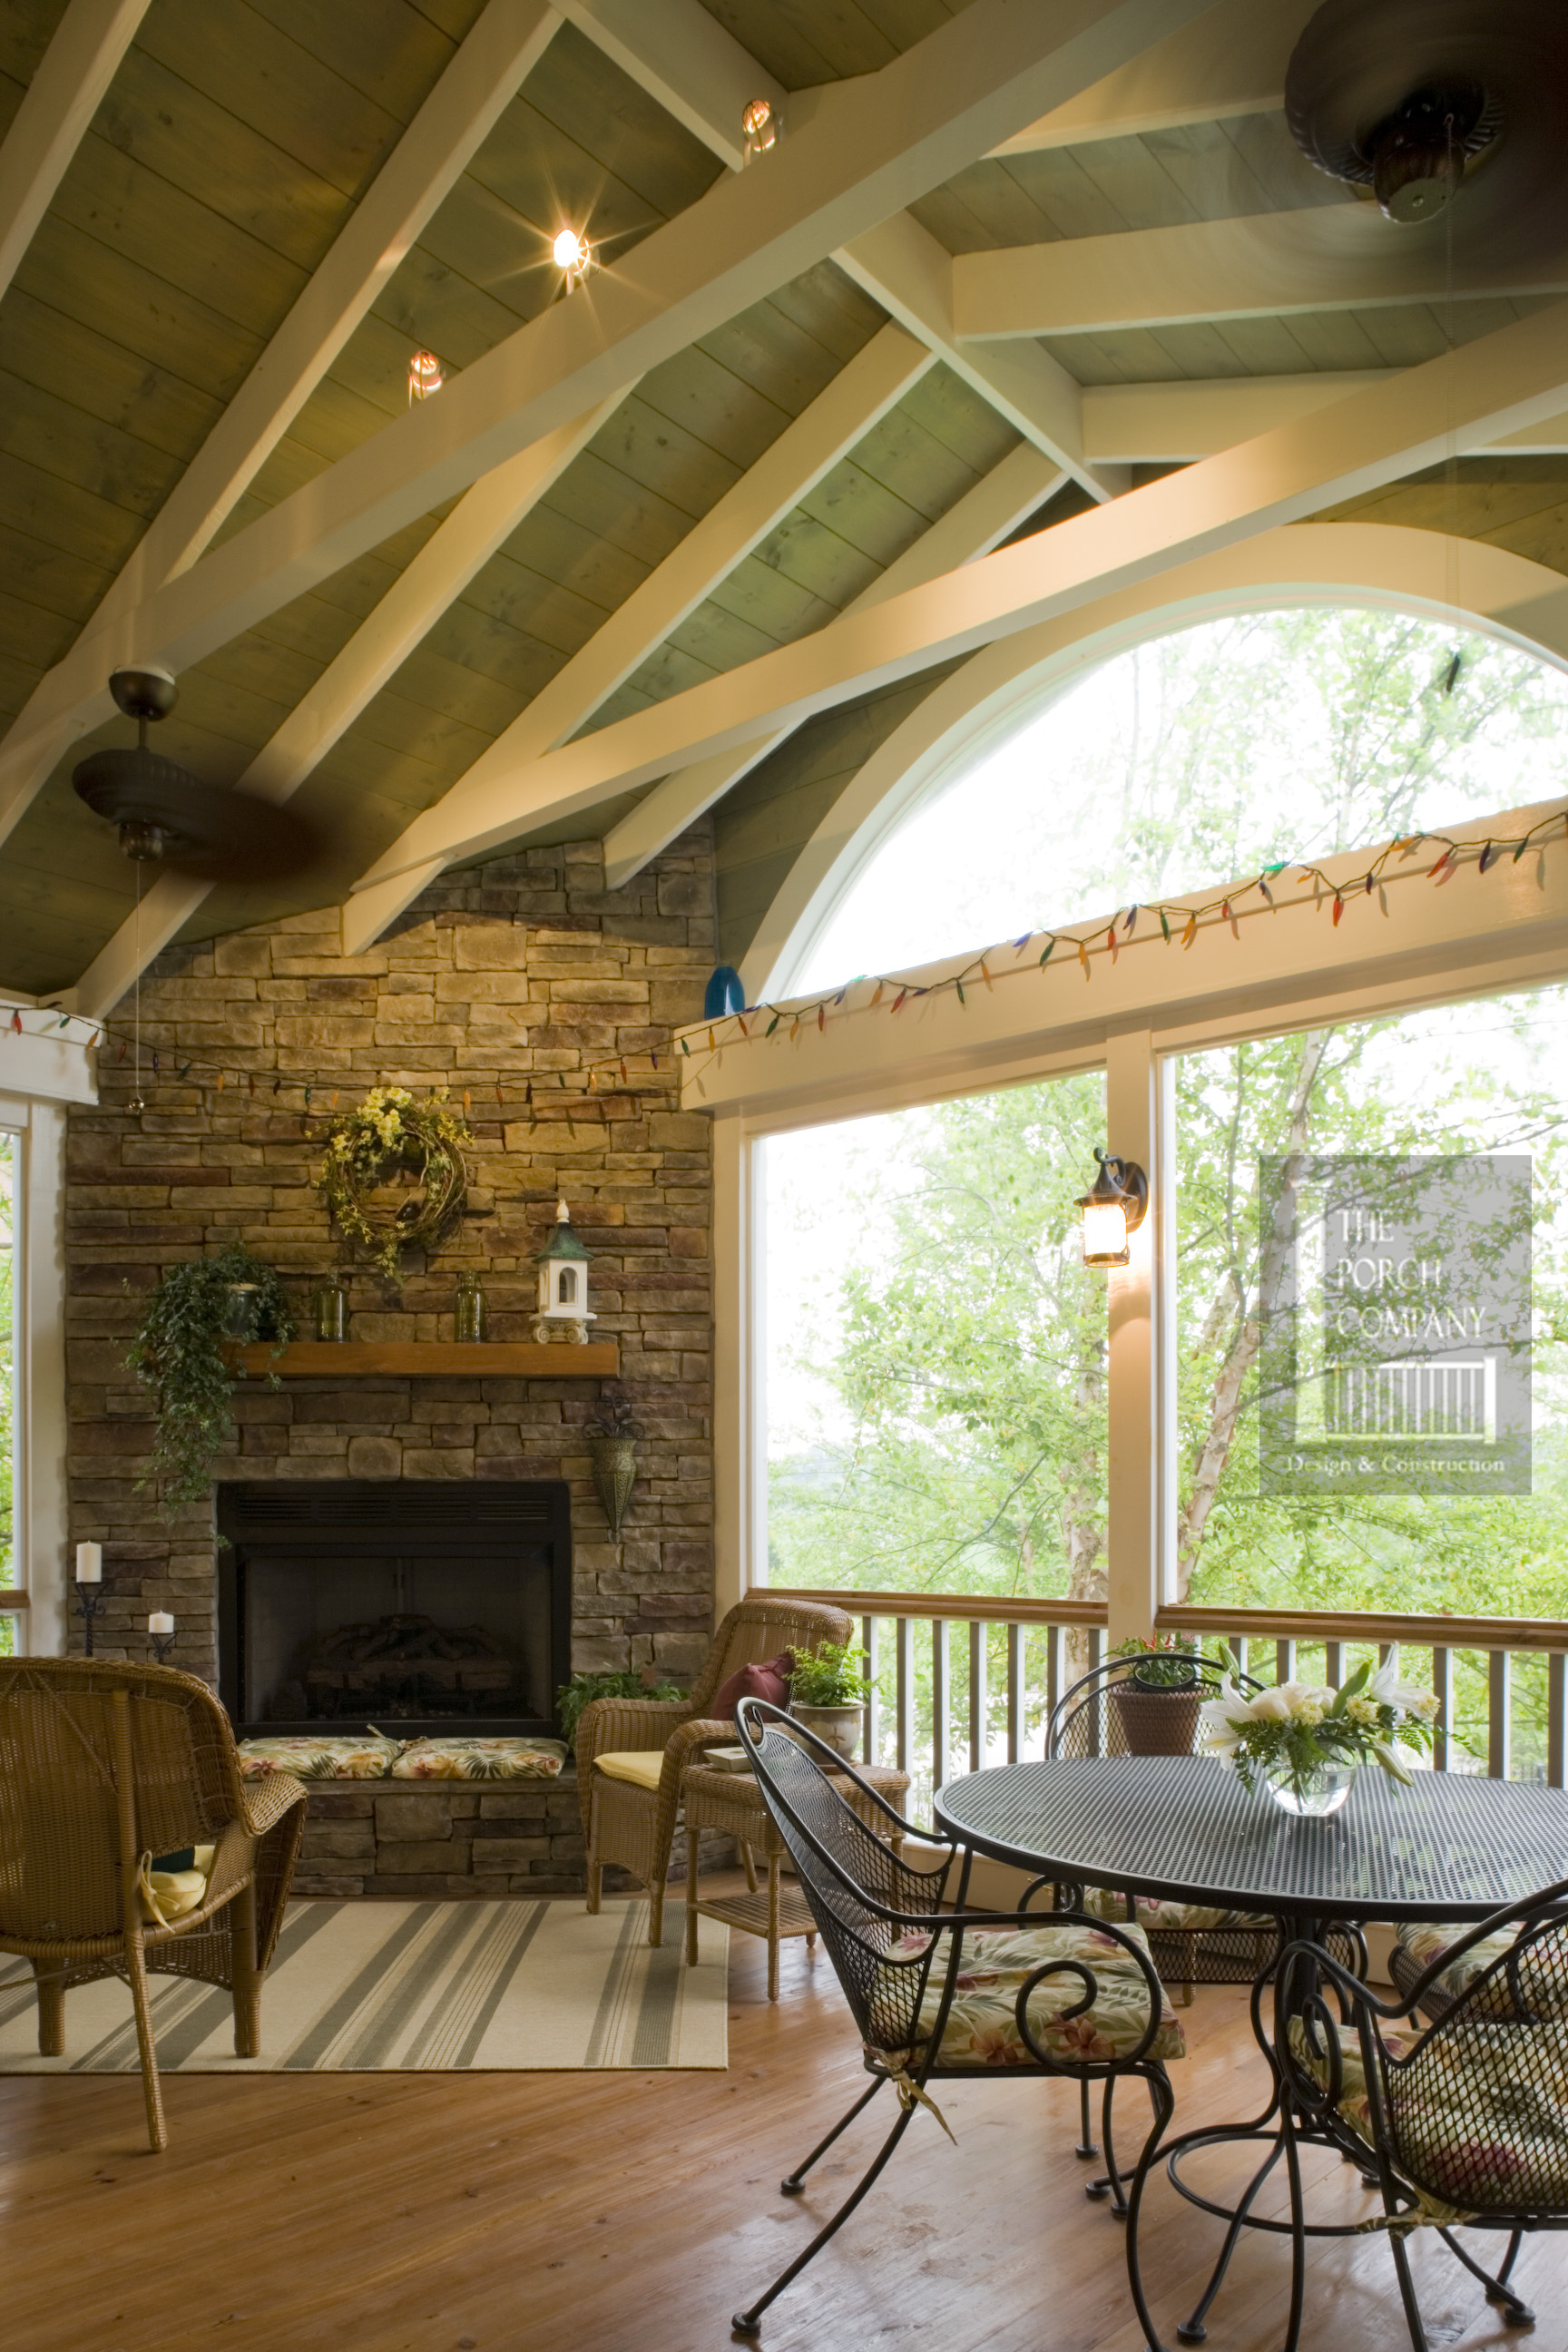 Roof Design Ideas: The Porch CompanyThe Porch Company